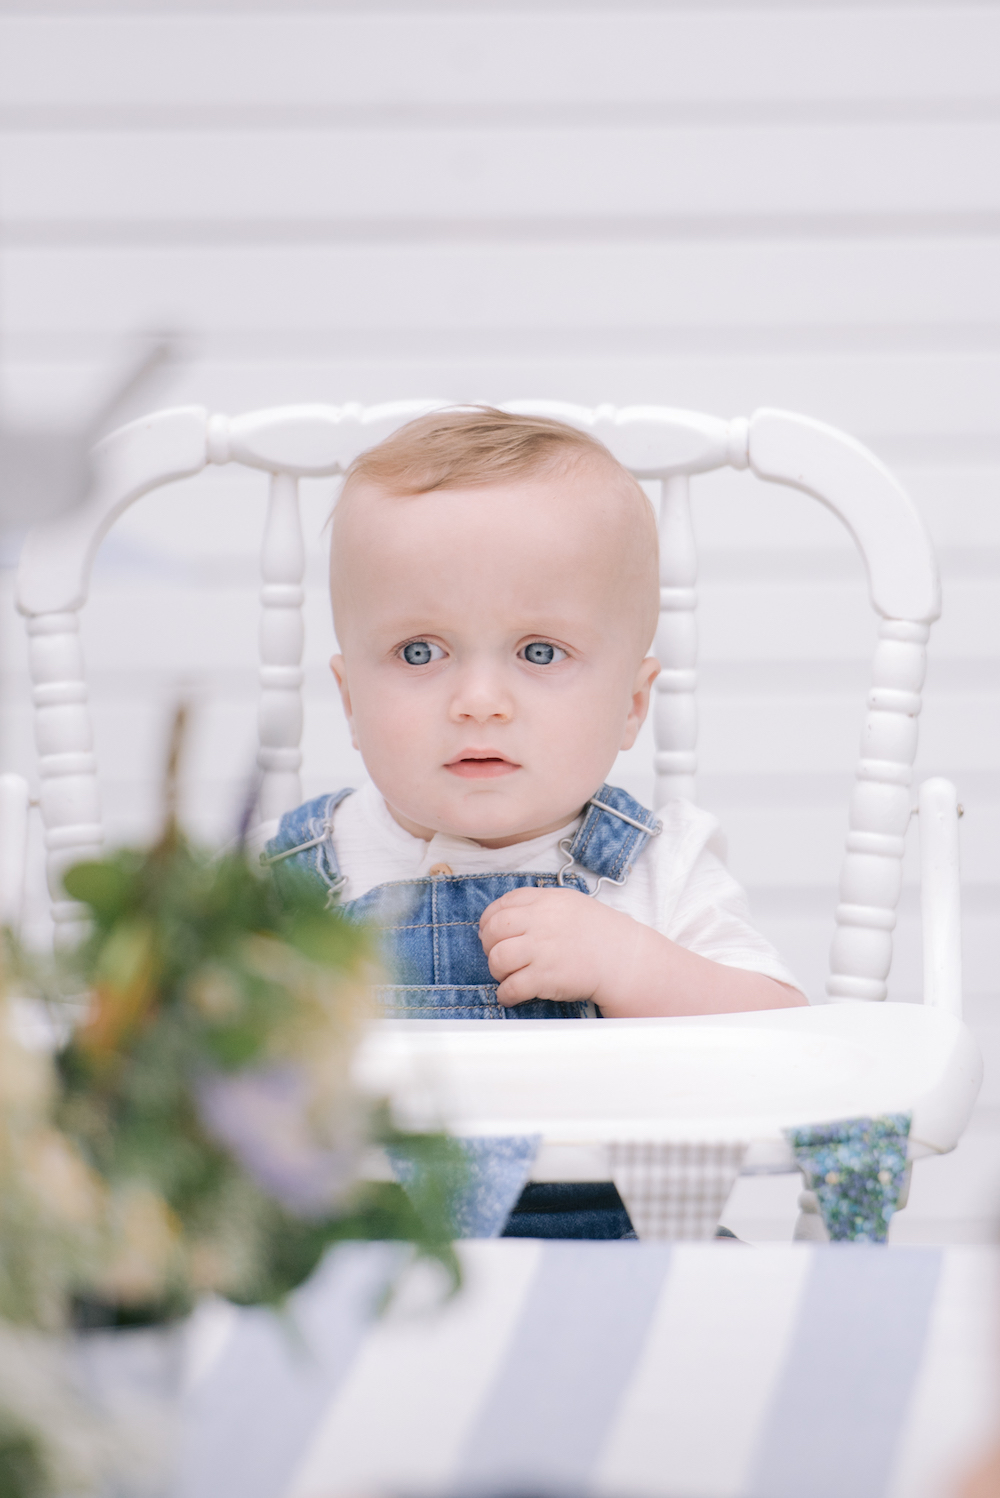 birthday baby boy in high chair